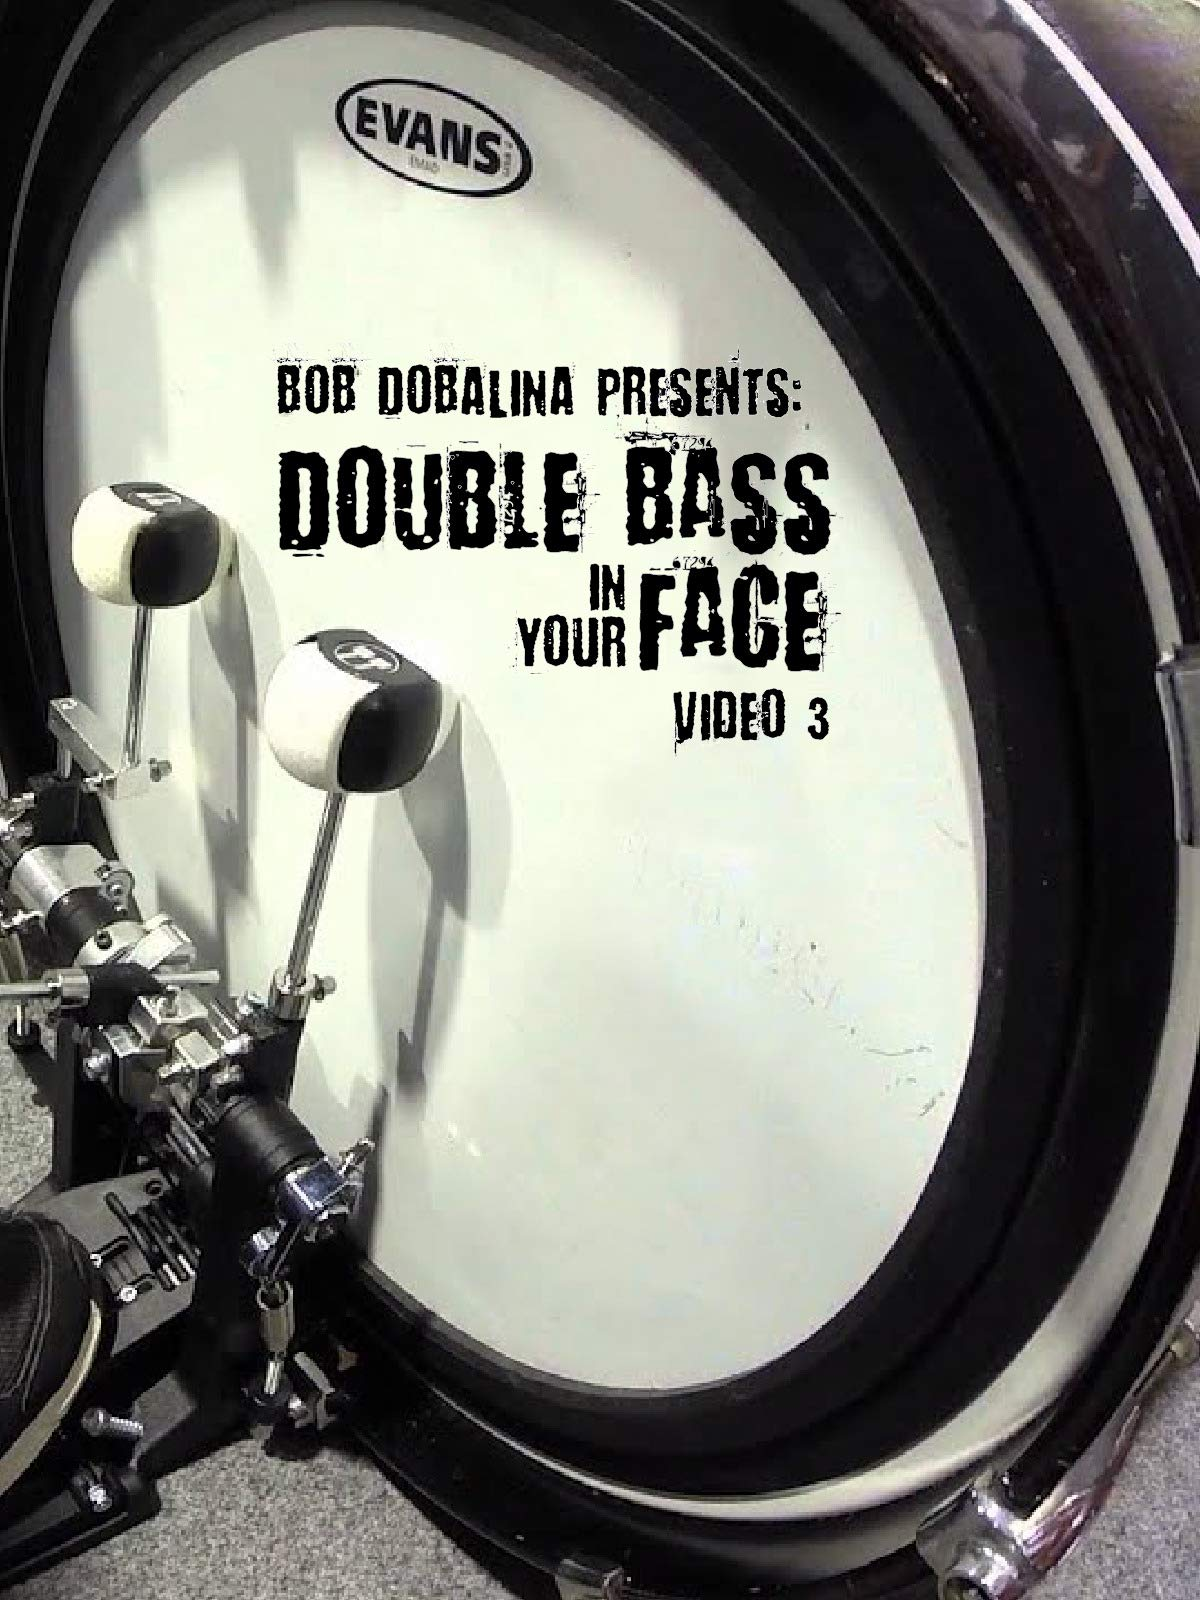 Bob Dobalina Presents: Double Bass In Your Face - Video 3